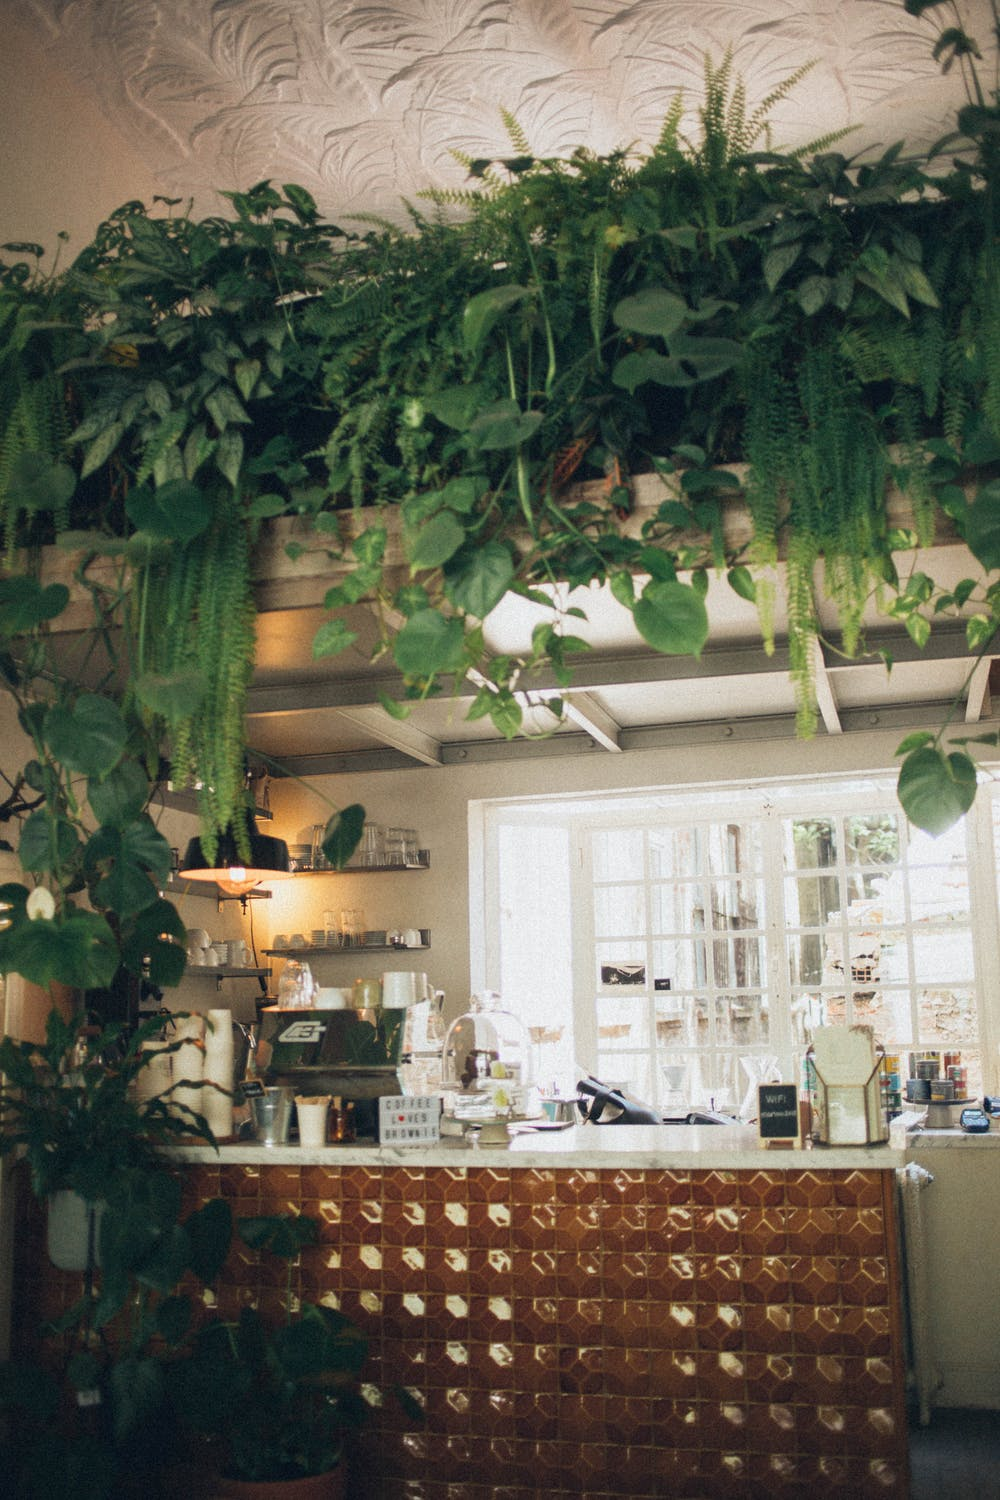 House Plants for Clean Air